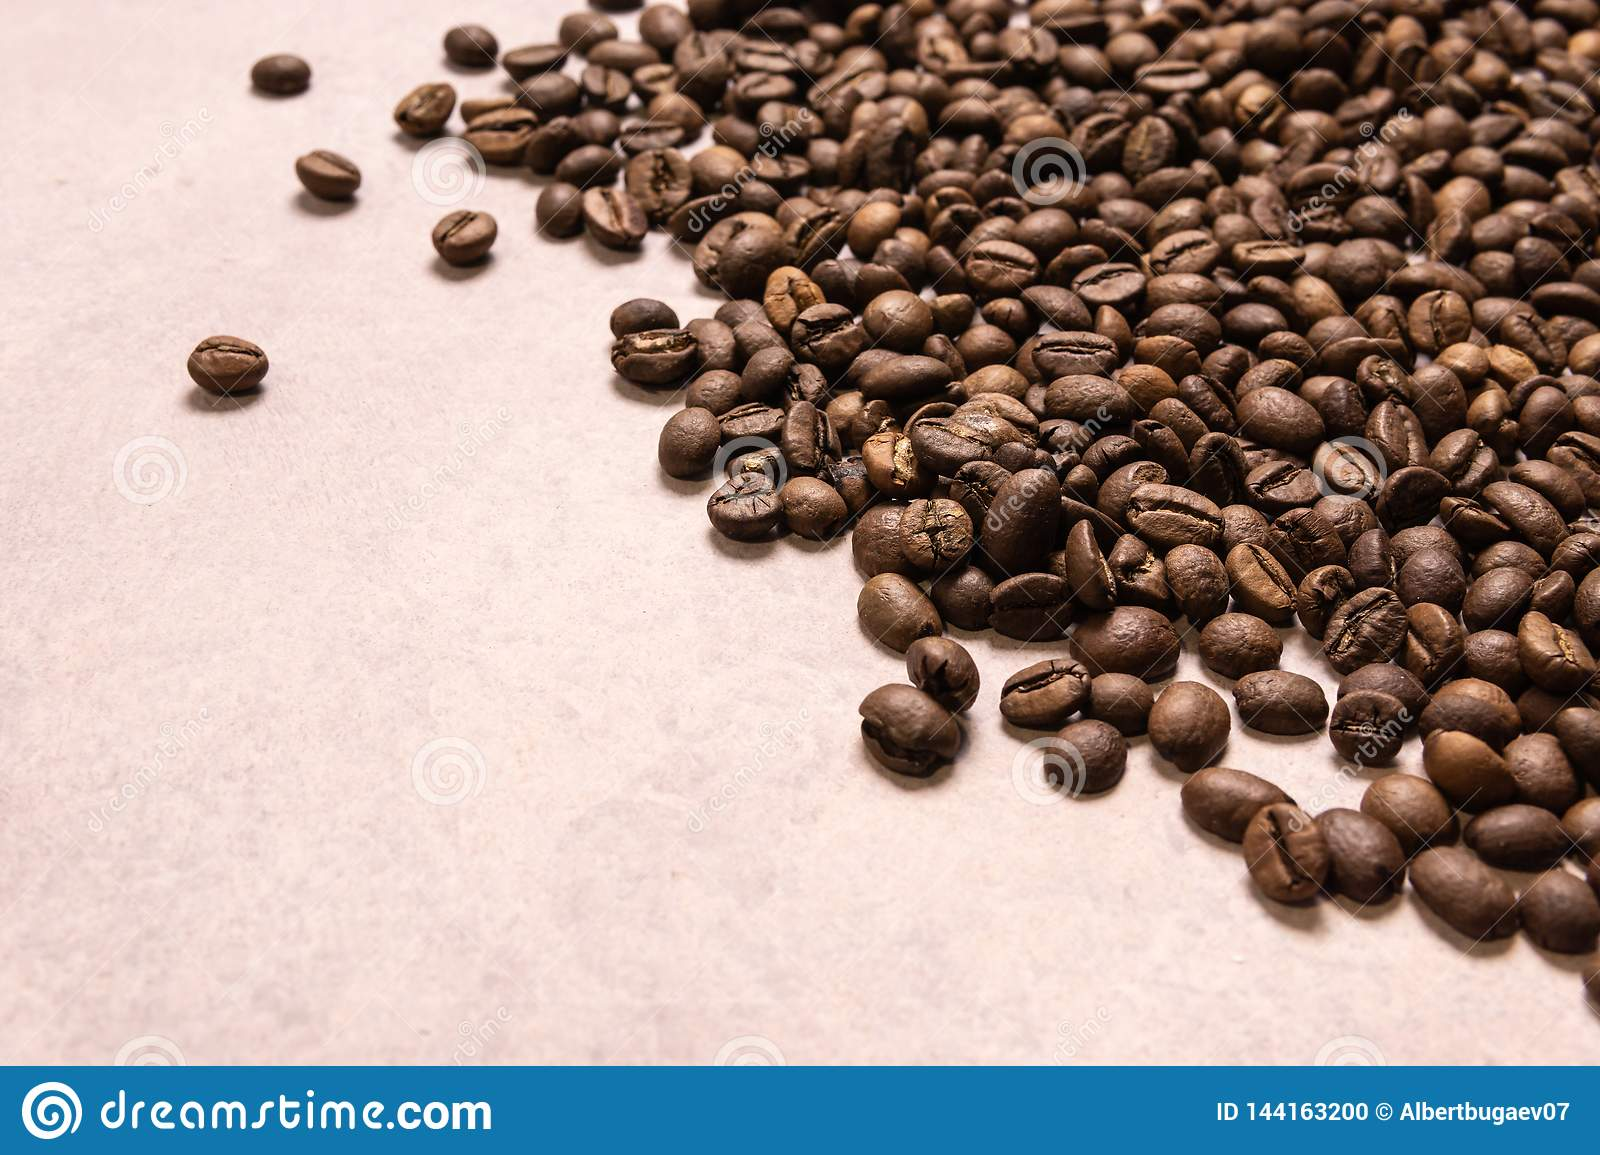 Roasted coffee beans in bulk on a light pink background. dark cofee roasted grain flavor aroma cafe, natural coffe shop background